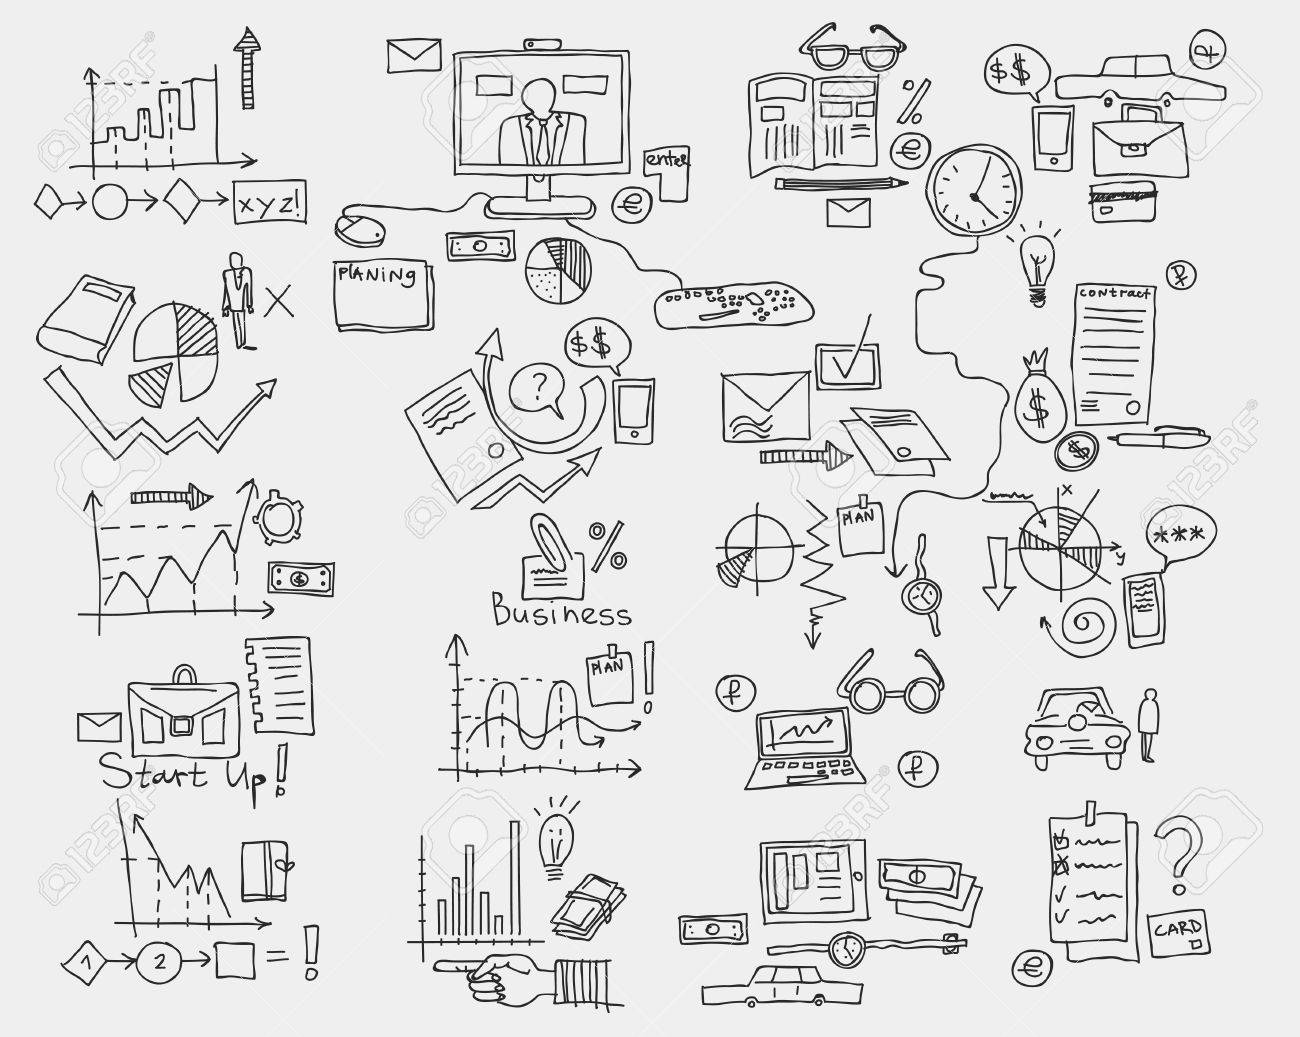 hand draw doodle elements business finance chart graph stock photo Draw Tools hand draw doodle elements business finance chart graph stock photo 62451817